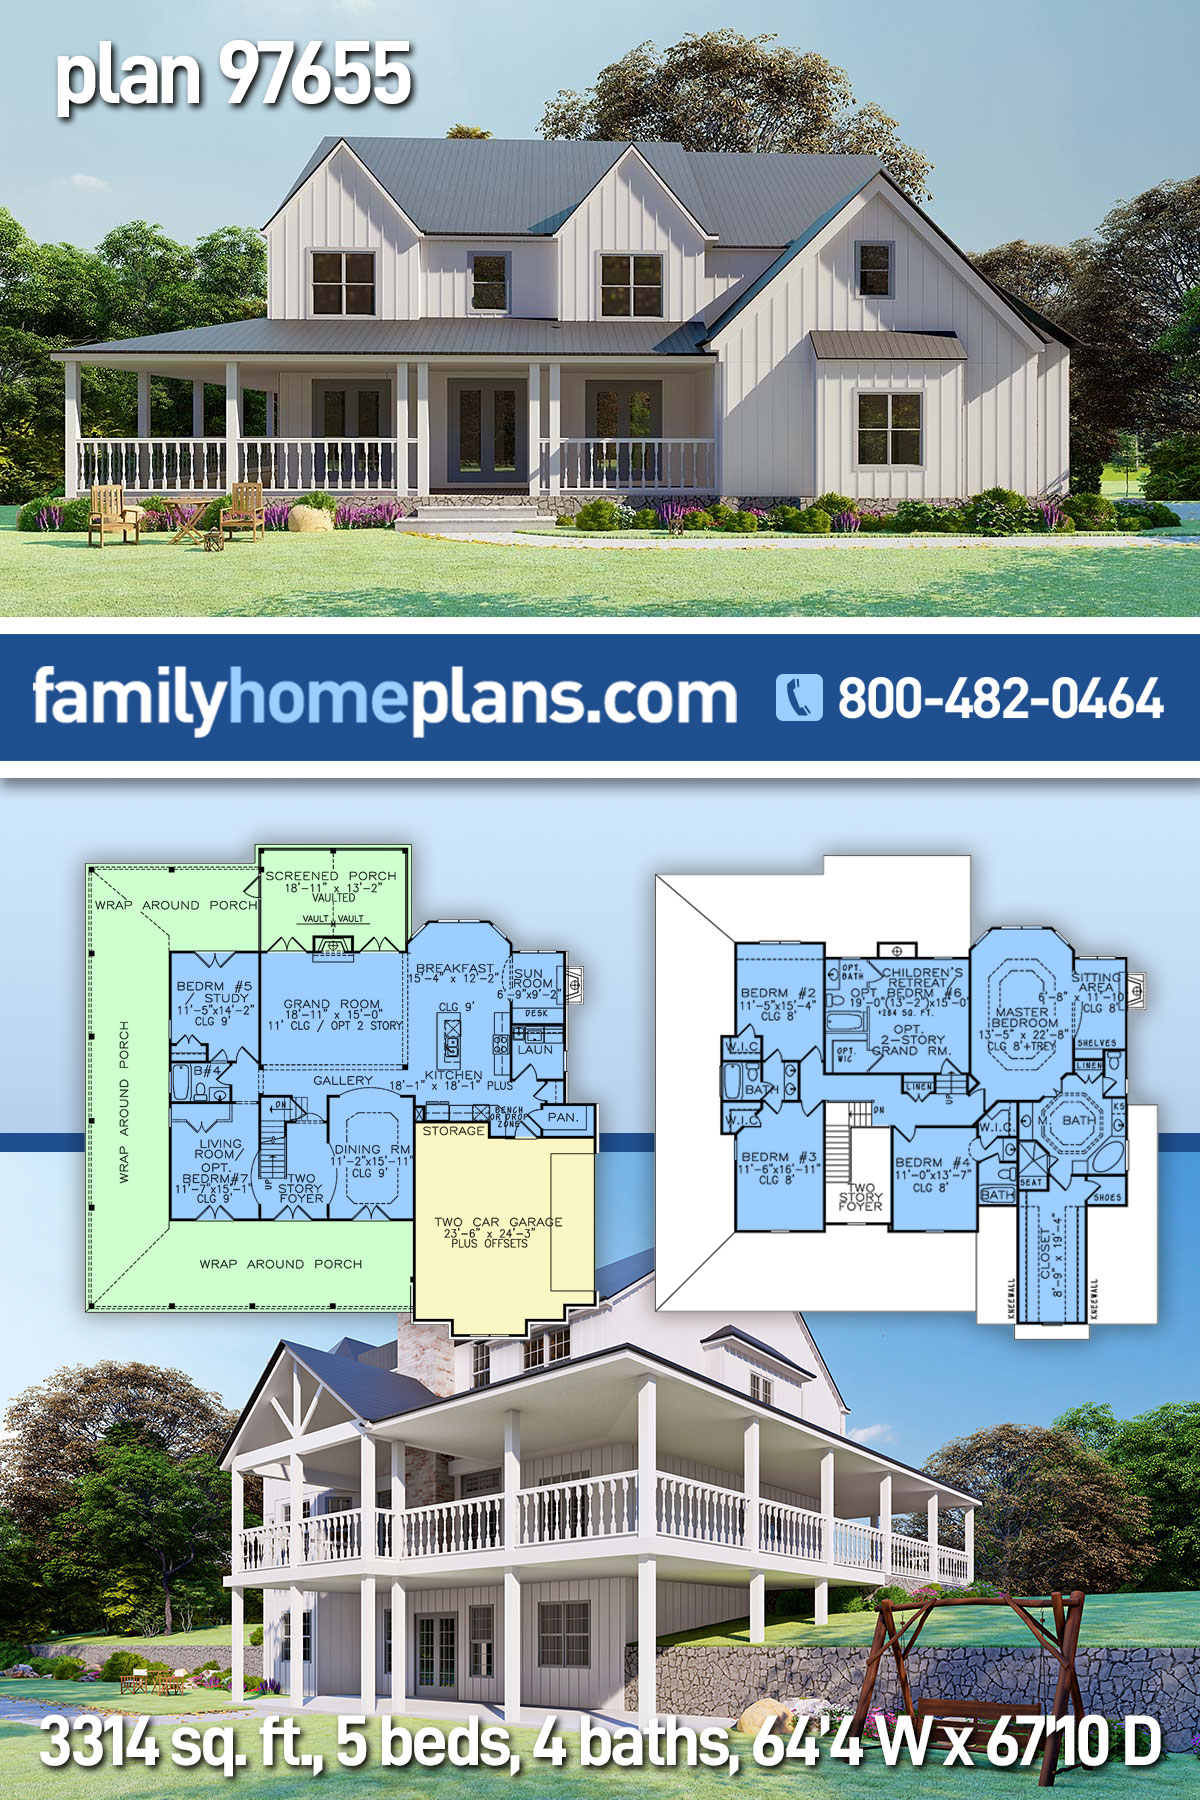 Country, Modern Farmhouse, Ranch, Southern House Plan 97655 with 5 Beds , 4 Baths , 2 Car Garage